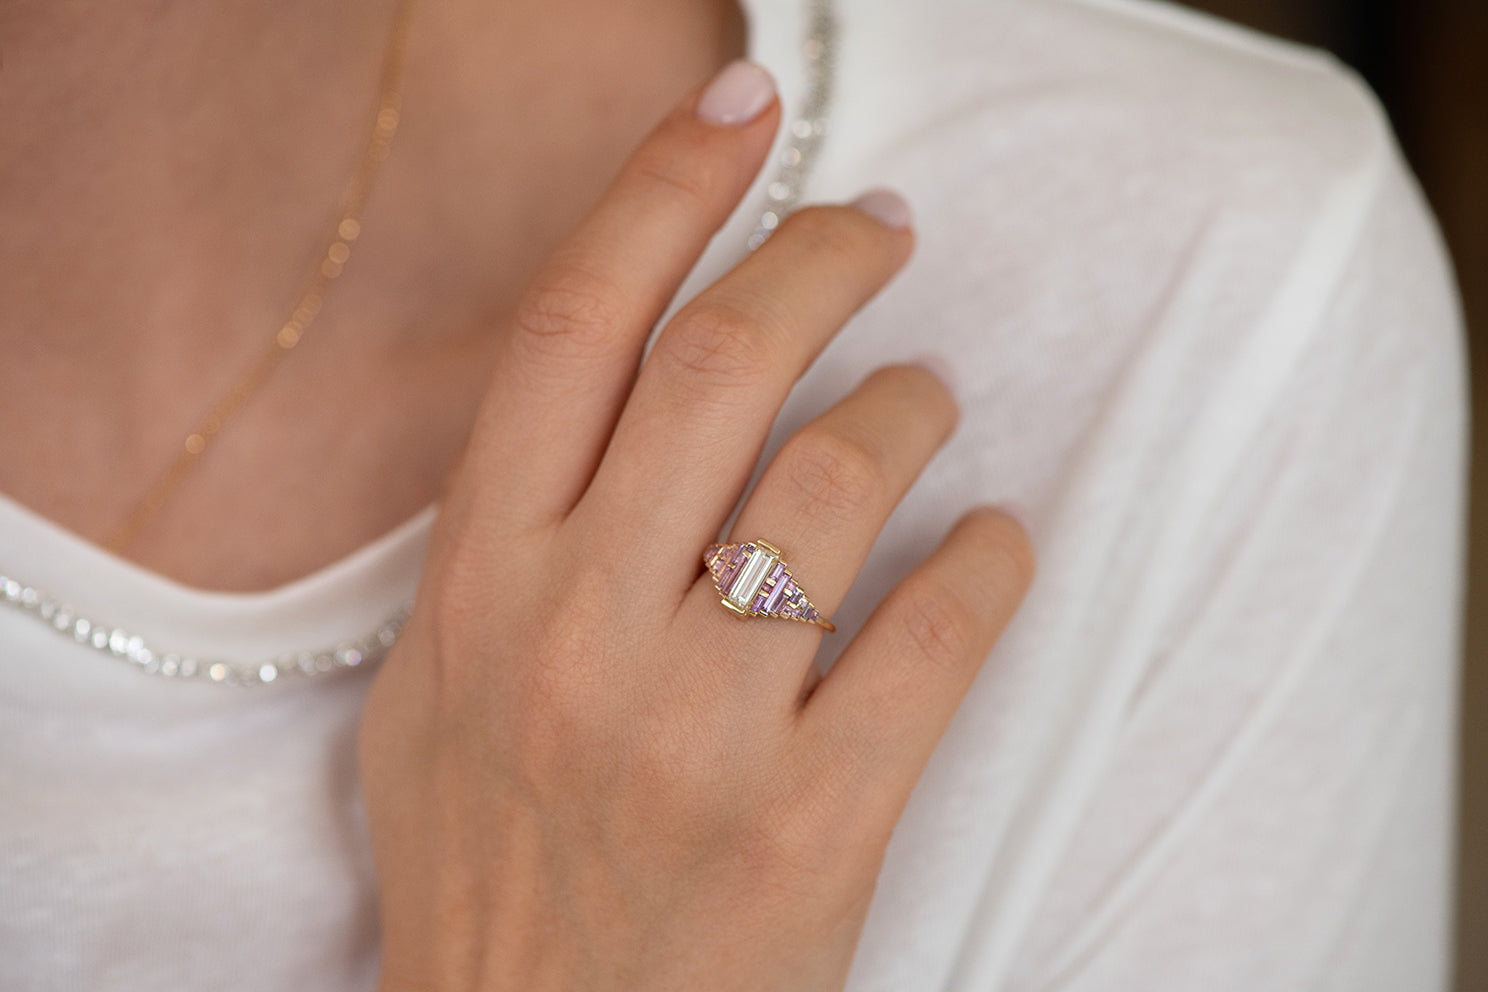 Purple and Lilac Sapphire Ring with Baguette Diamond on Hand Alternate Angle